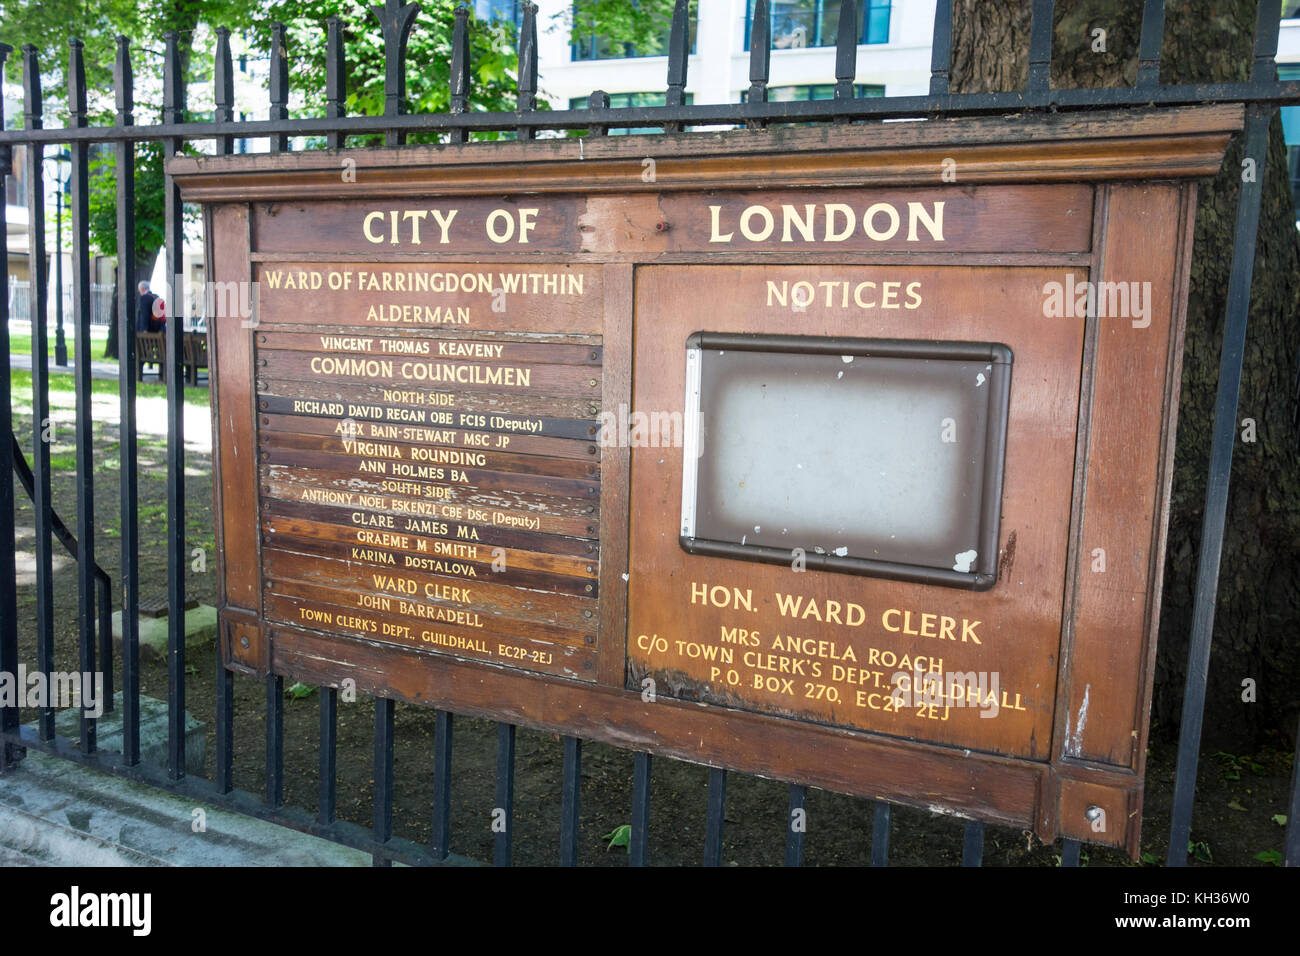 Ward of Farringdon Within list of Alderman notices notice board, City of London, UK - Stock Image